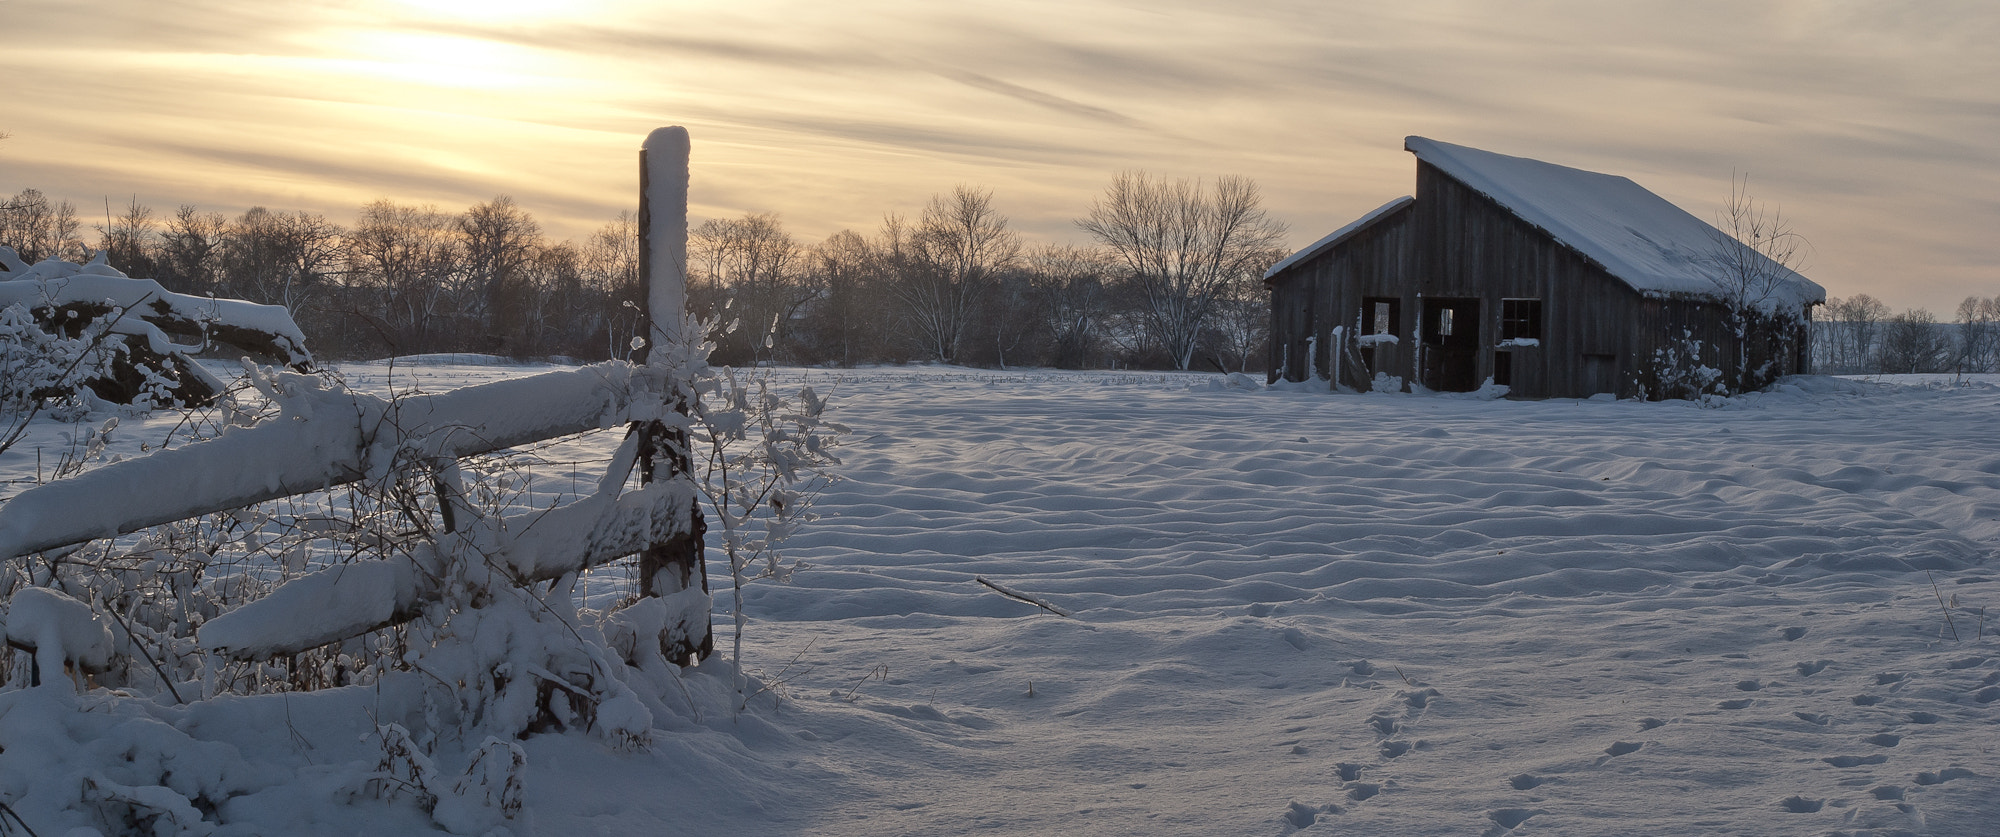 Photograph Snowy Fence and Old Barn by Scott Hull on 500px